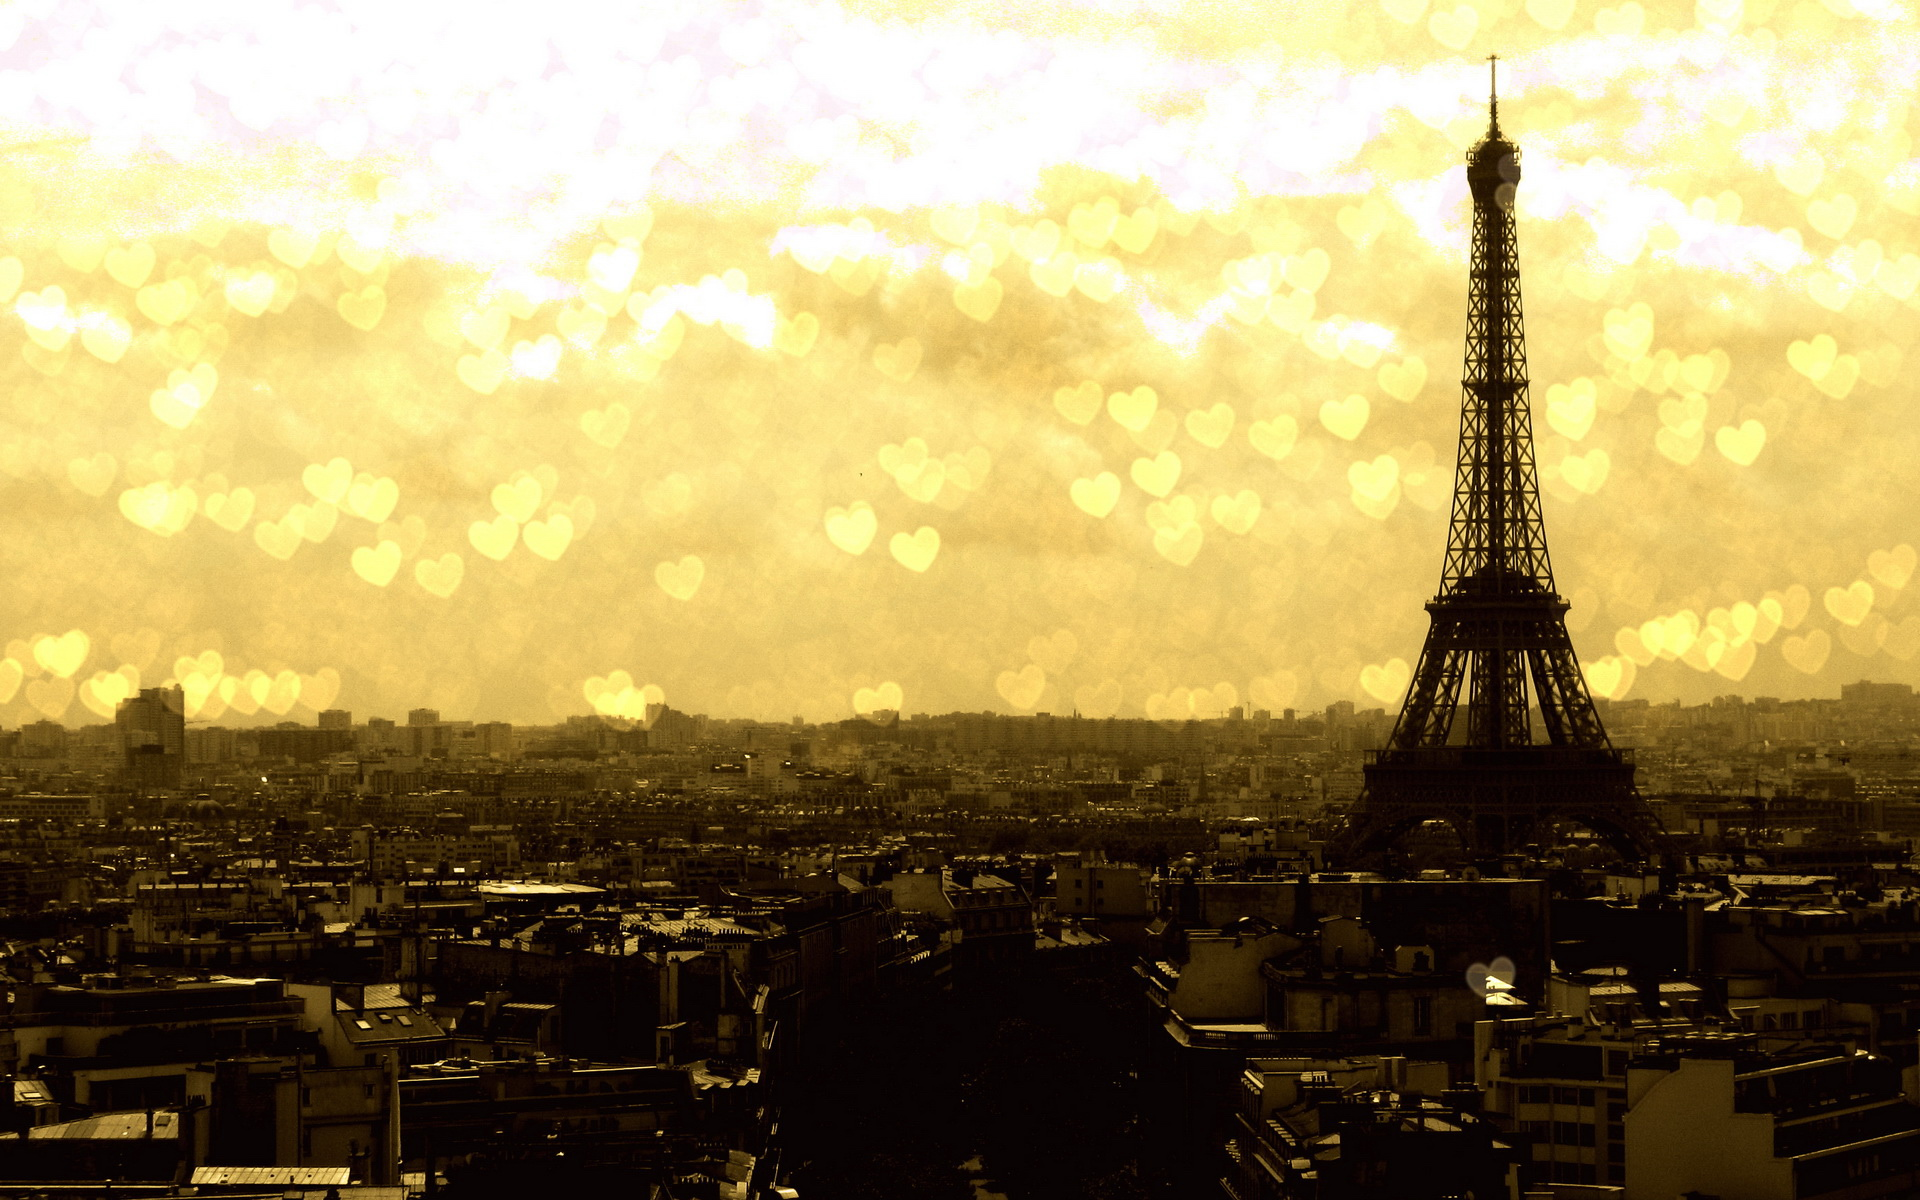 Amazing Eiffel Tower Wallpaper 8276